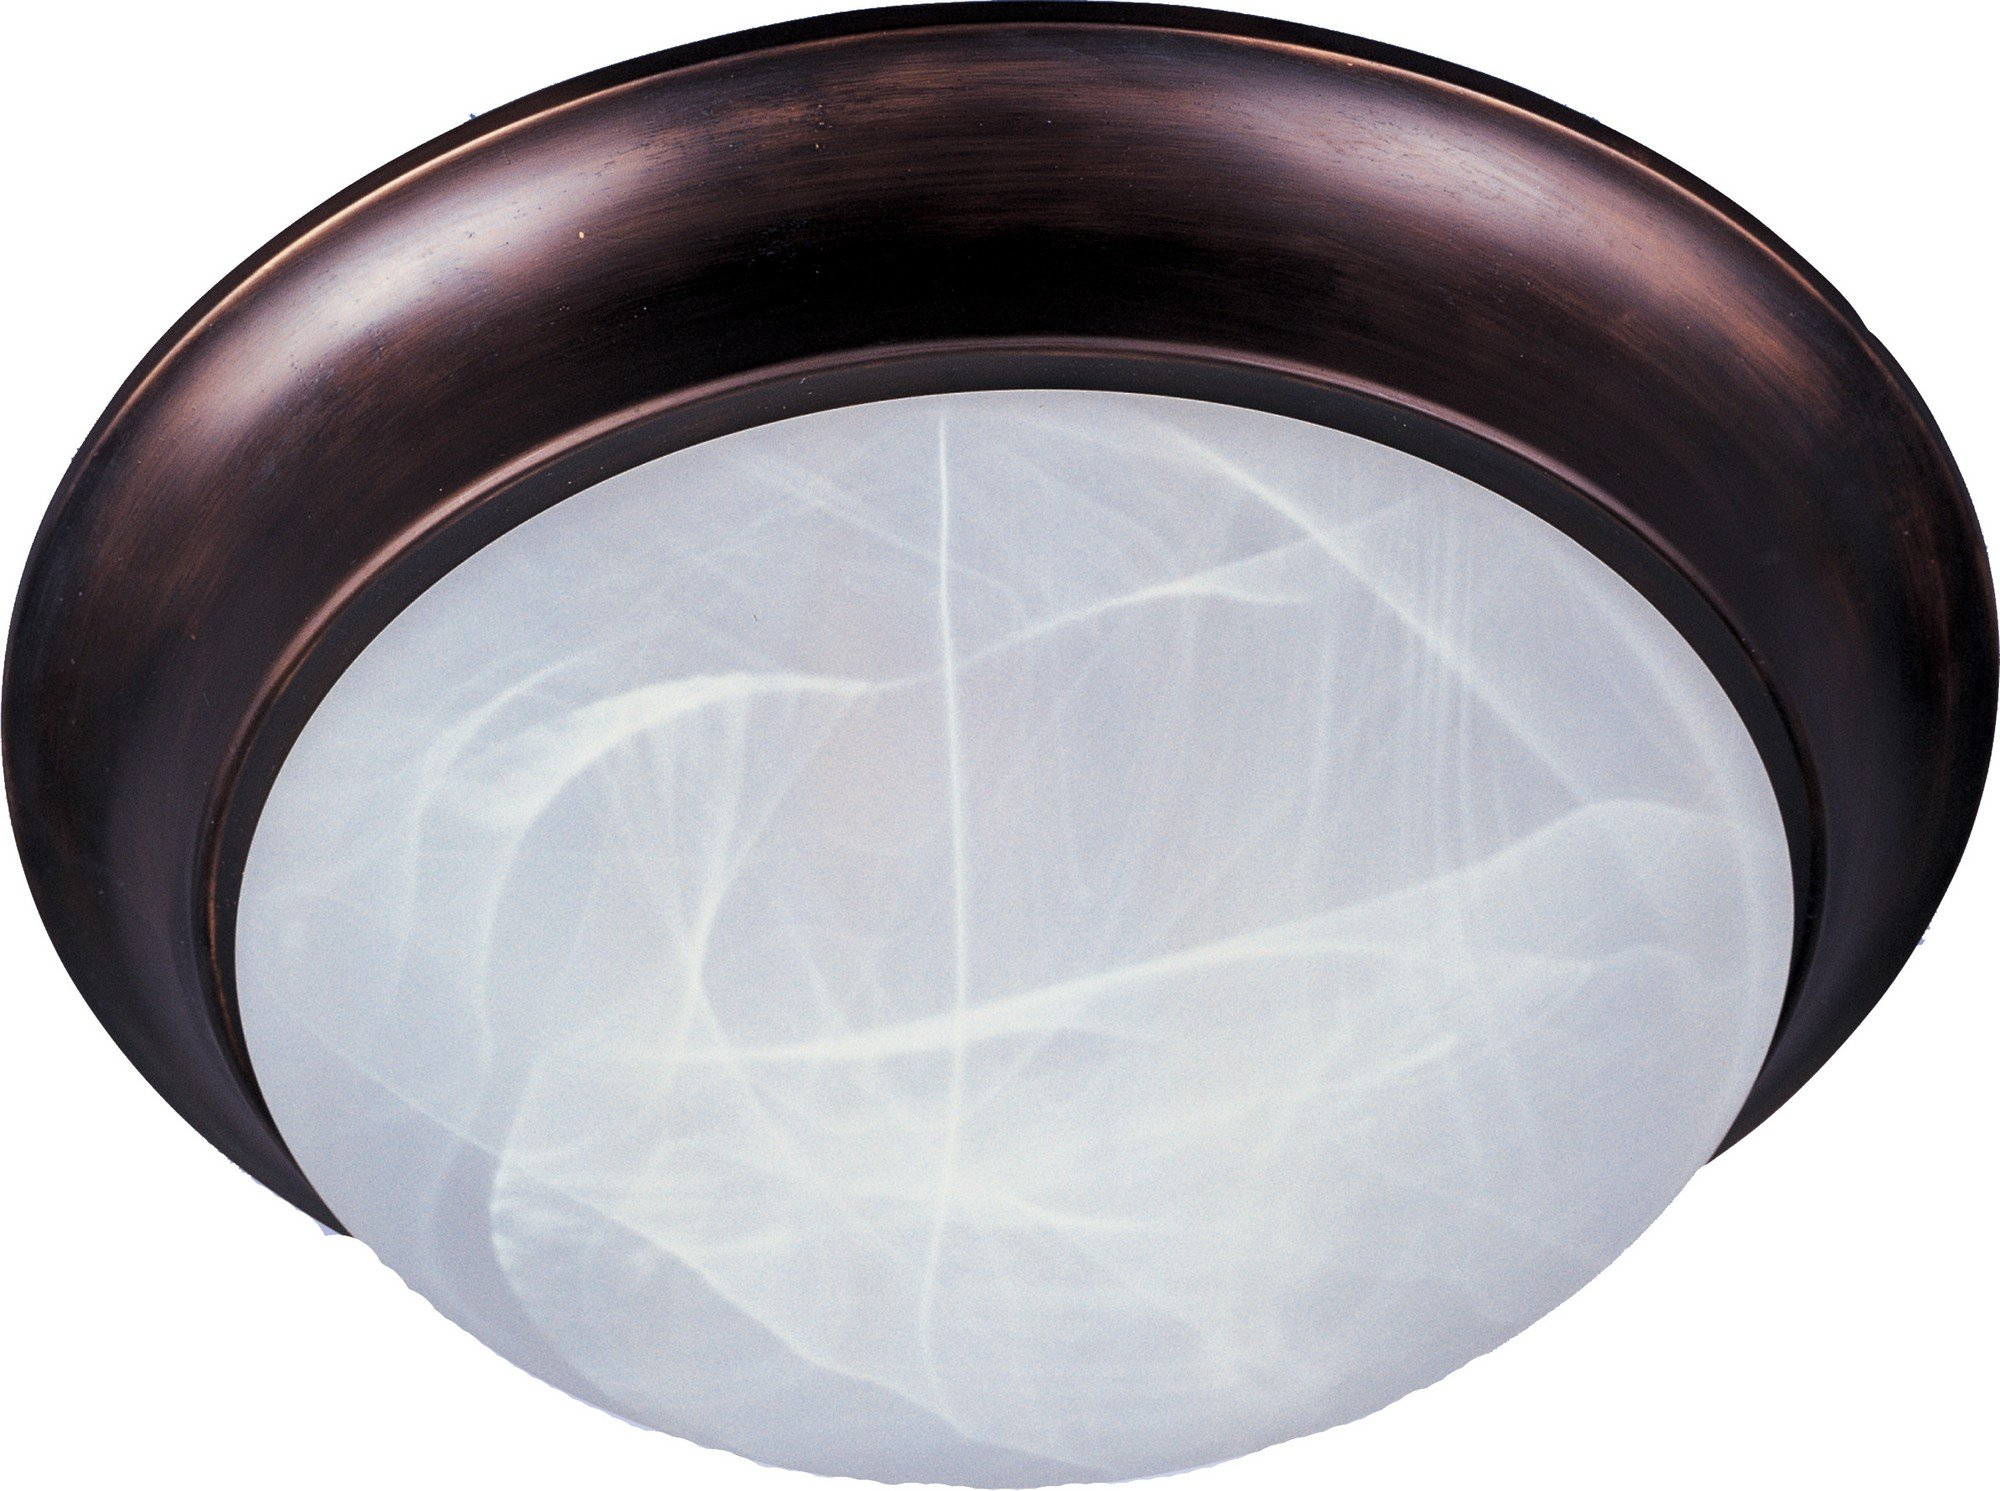 Maxim 5850MROI Essentials 1-Light Flush Mount, Oil Rubbed Bronze Finish, Marble Glass, MB Incandescent Incandescent Bulb , 40W Max., Dry Safety Rating, 2900K Color Temp, Standard Dimmable, Glass Shade Material, 4500 Rated Lumens